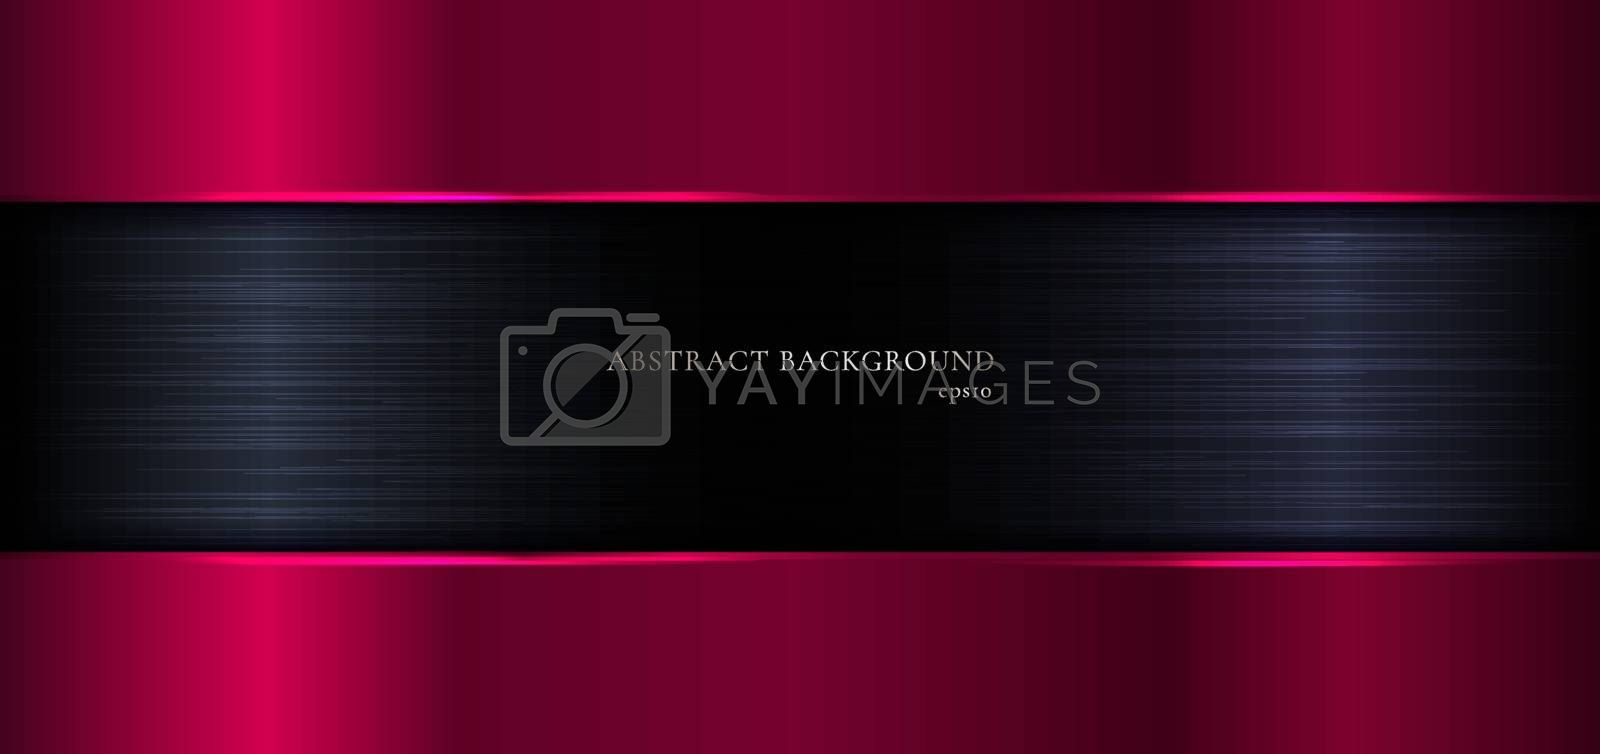 Abstract banner web elegant template geometric pink gradient metallic on black metal background and texture. Luxury style. Vector illustration